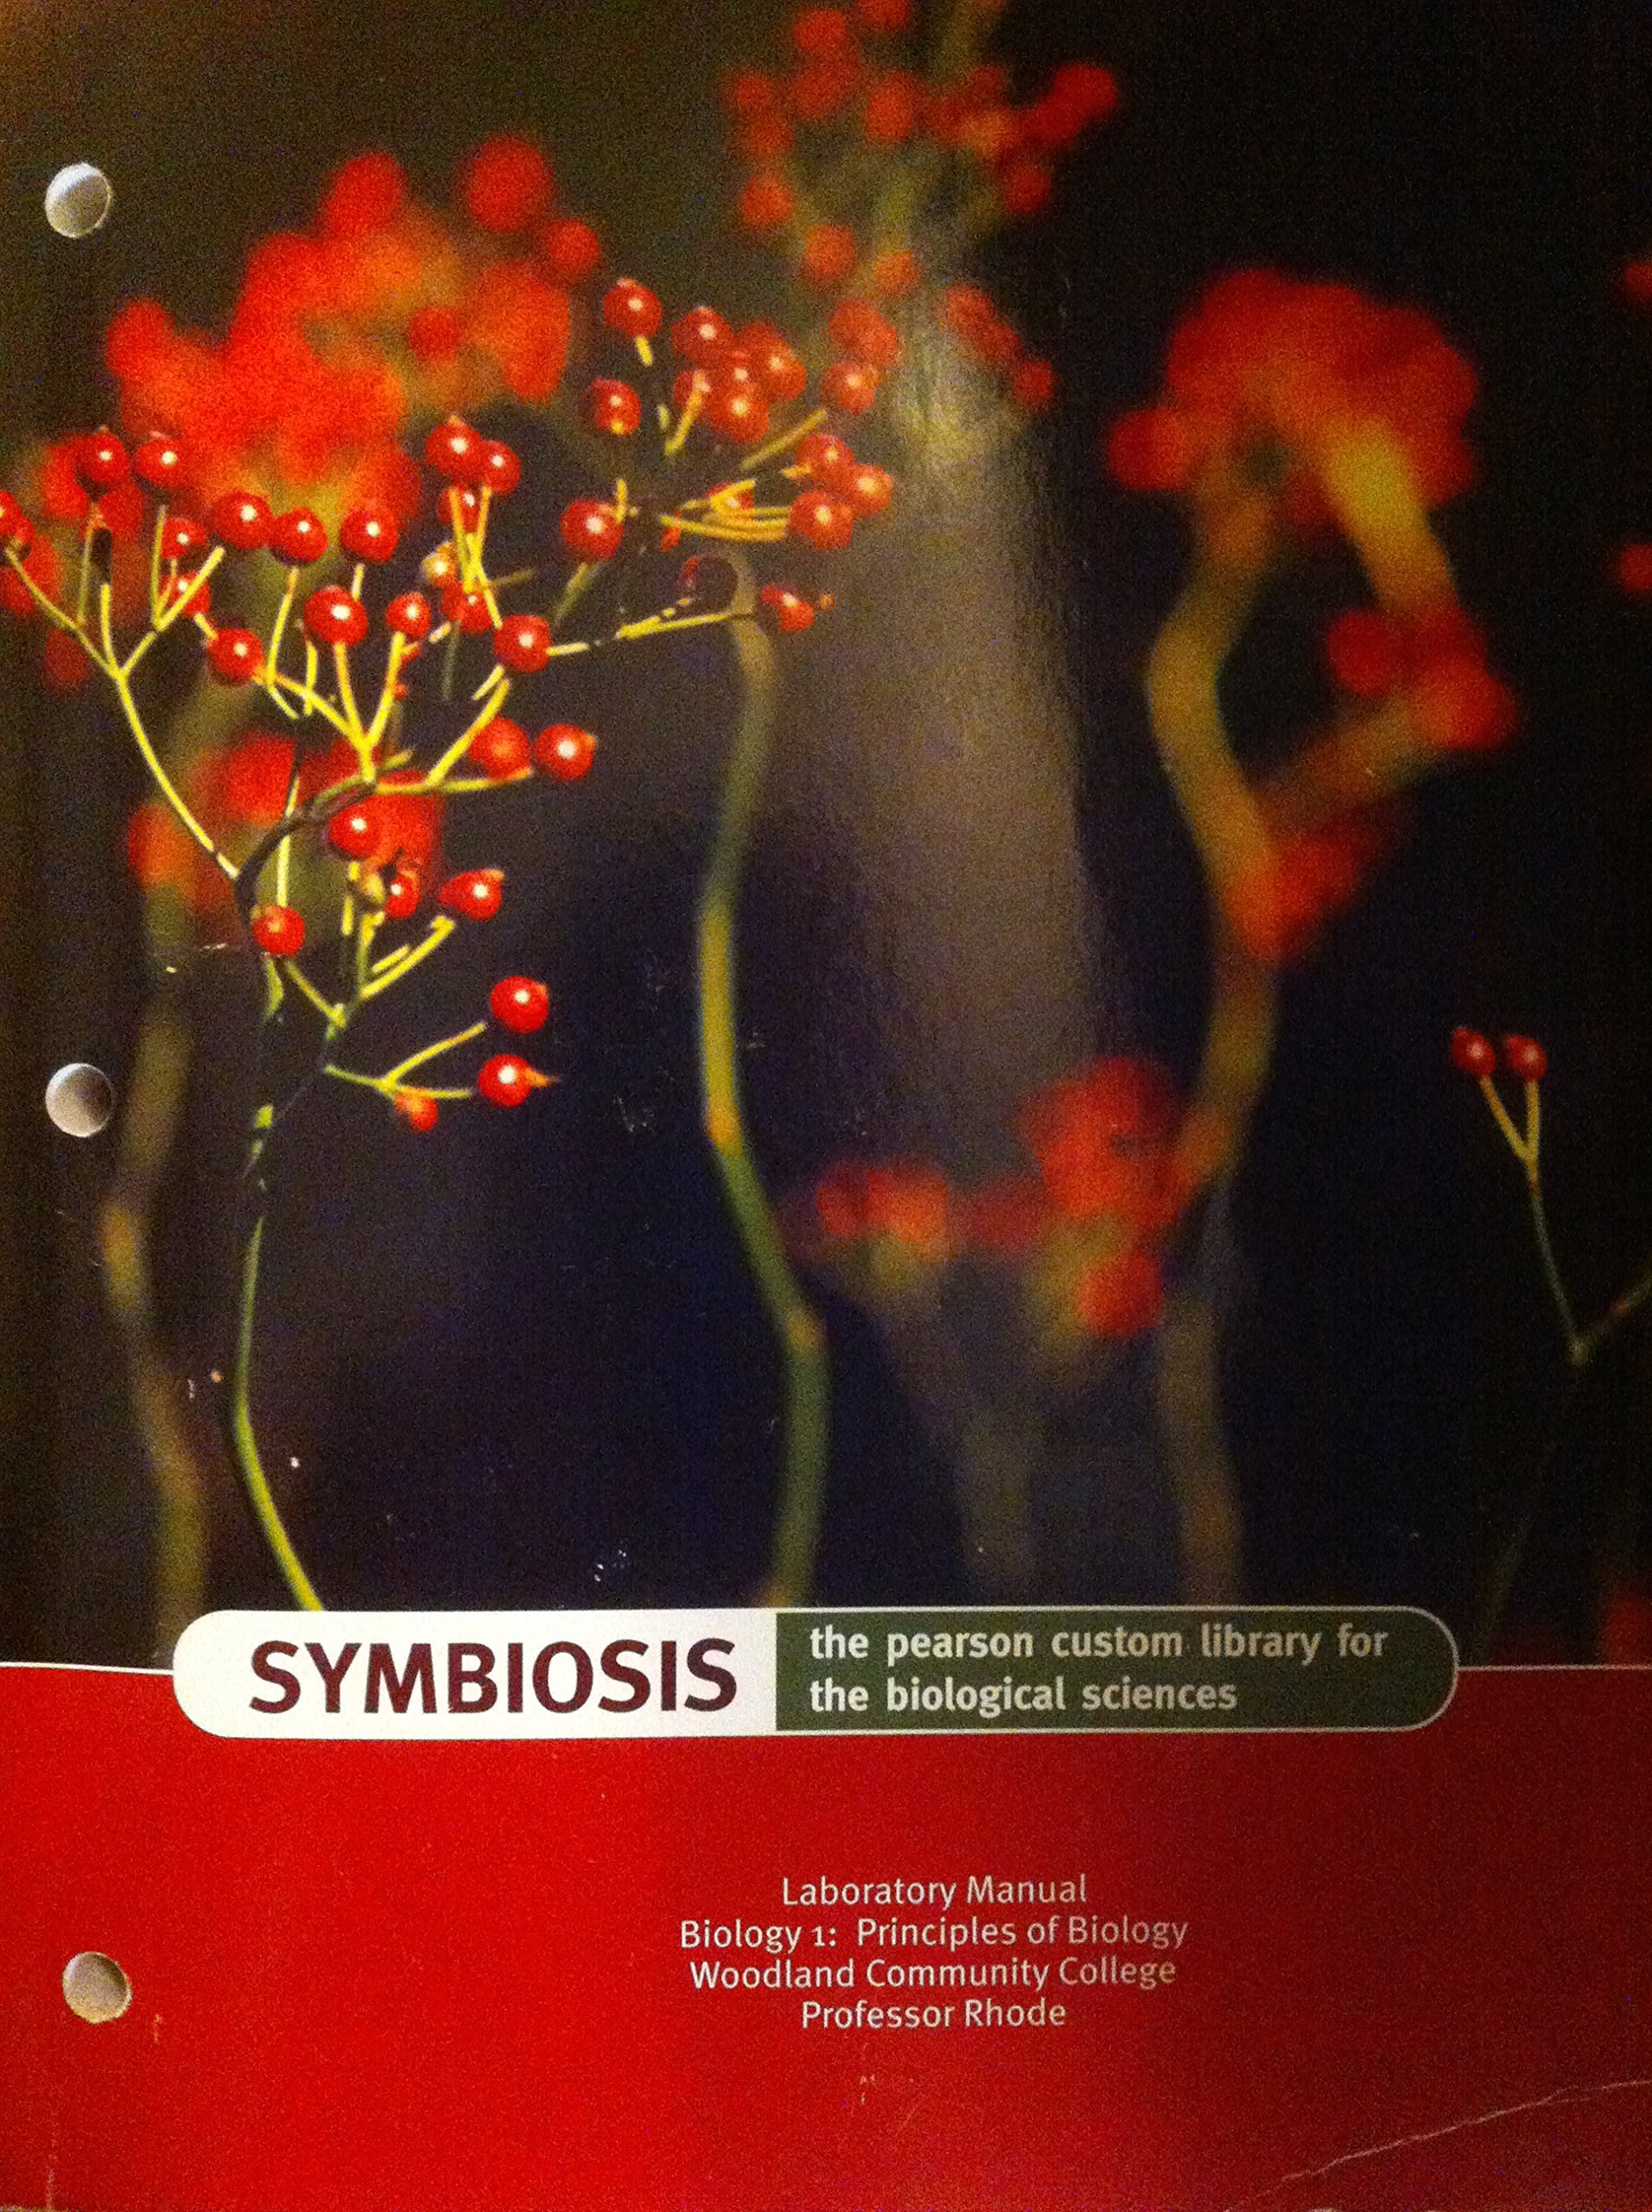 Symbiosis: The Pearson Custom Library for the Biological Sciences. Laboratory  Manual for BIO 1: Principles of Biology.: Professor Rhode: 9780536878939:  ...